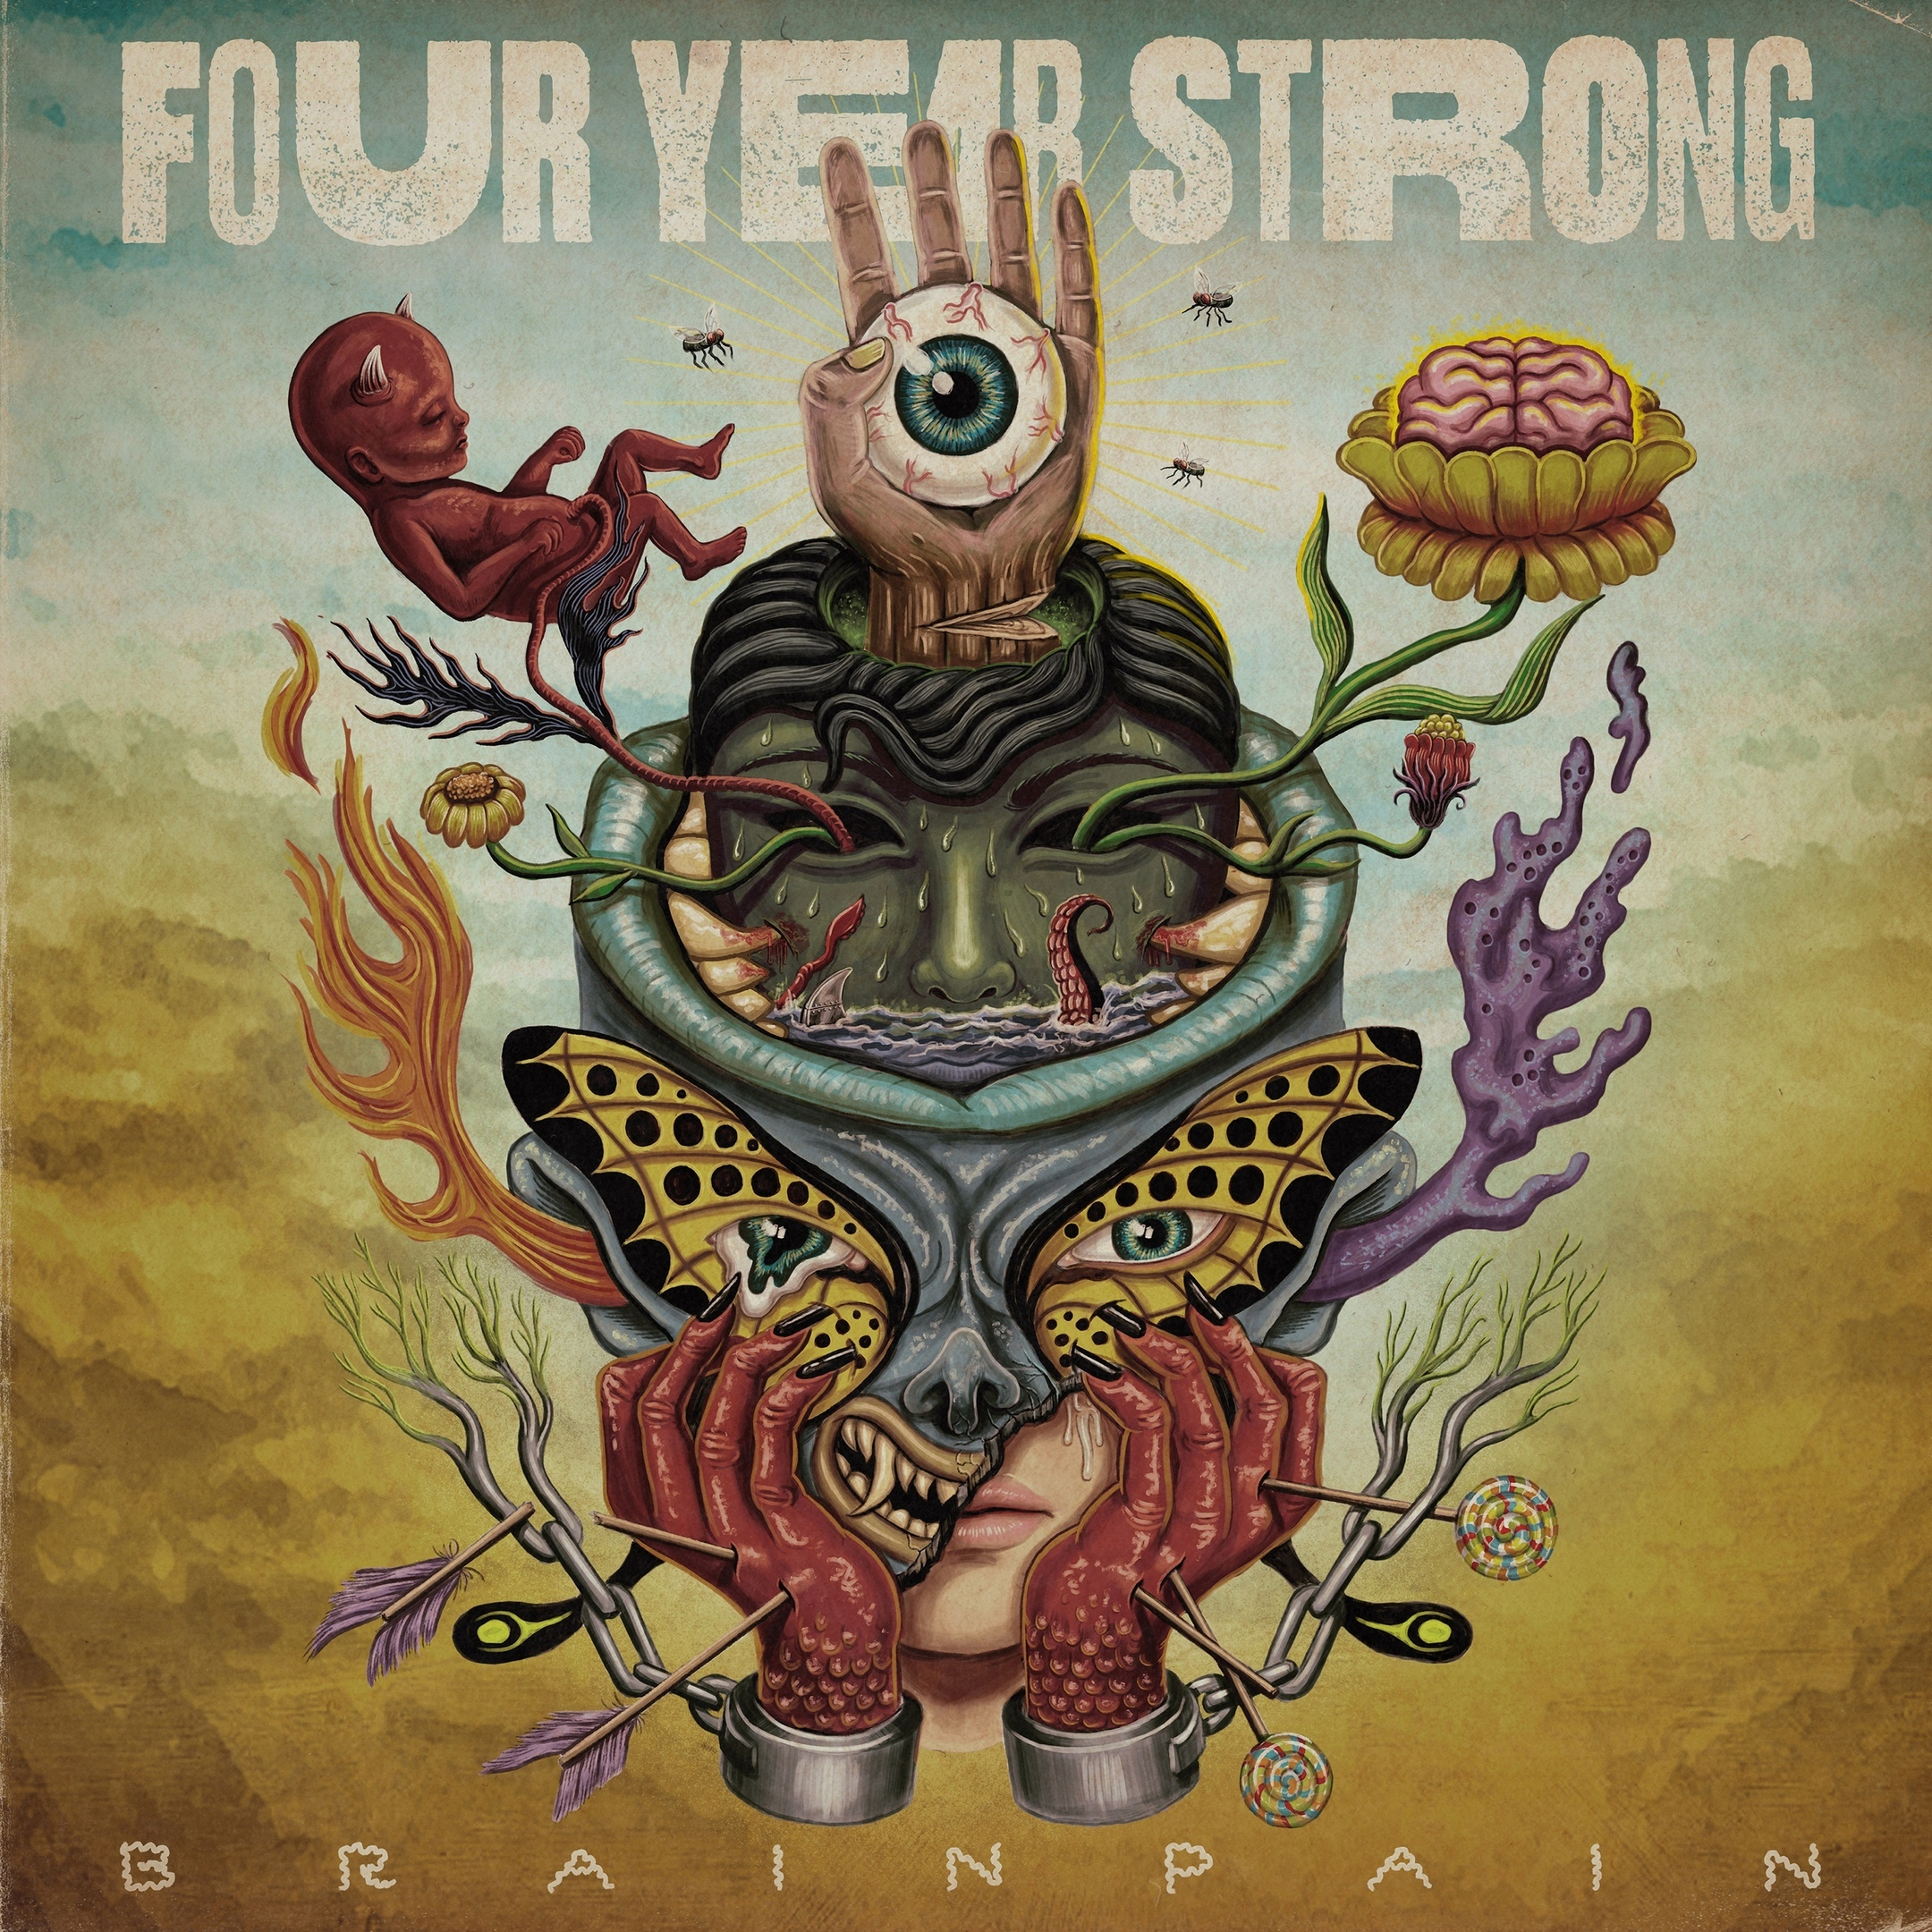 Four Year Strong - Brain Pain (2020)